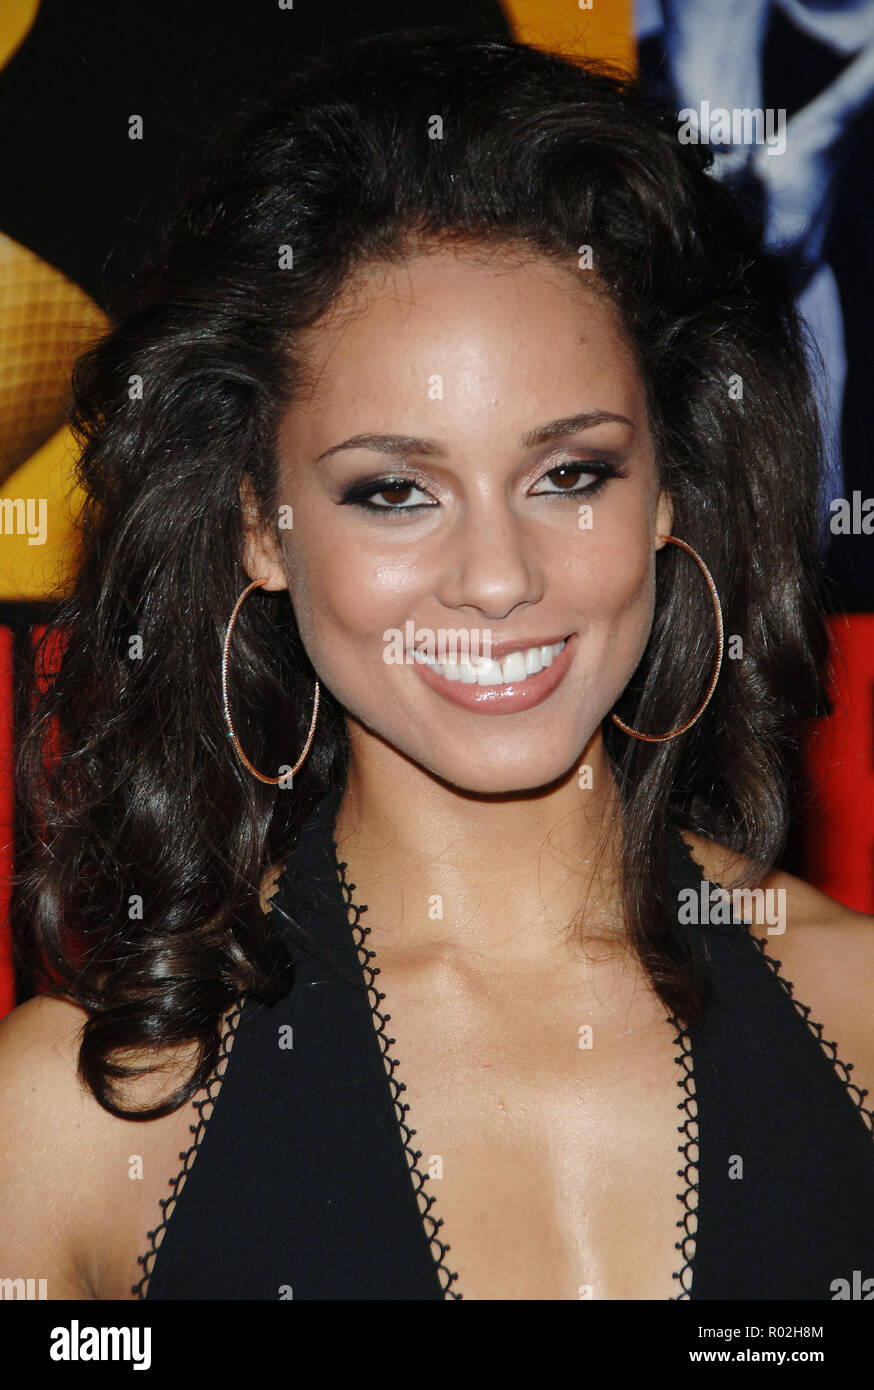 Alicia Keys arriving at the Smokin' Aces at the Chinese Theatre In Los Angeles. January 18, 2007.  eye contact smile portrait headshot KeysAlicia030 Red Carpet Event, Vertical, USA, Film Industry, Celebrities,  Photography, Bestof, Arts Culture and Entertainment, Topix Celebrities fashion /  Vertical, Best of, Event in Hollywood Life - California,  Red Carpet and backstage, USA, Film Industry, Celebrities,  movie celebrities, TV celebrities, Music celebrities, Photography, Bestof, Arts Culture and Entertainment,  Topix, headshot, vertical, one person,, from the year , 2007, inquiry tsuni@Gamma - Stock Image